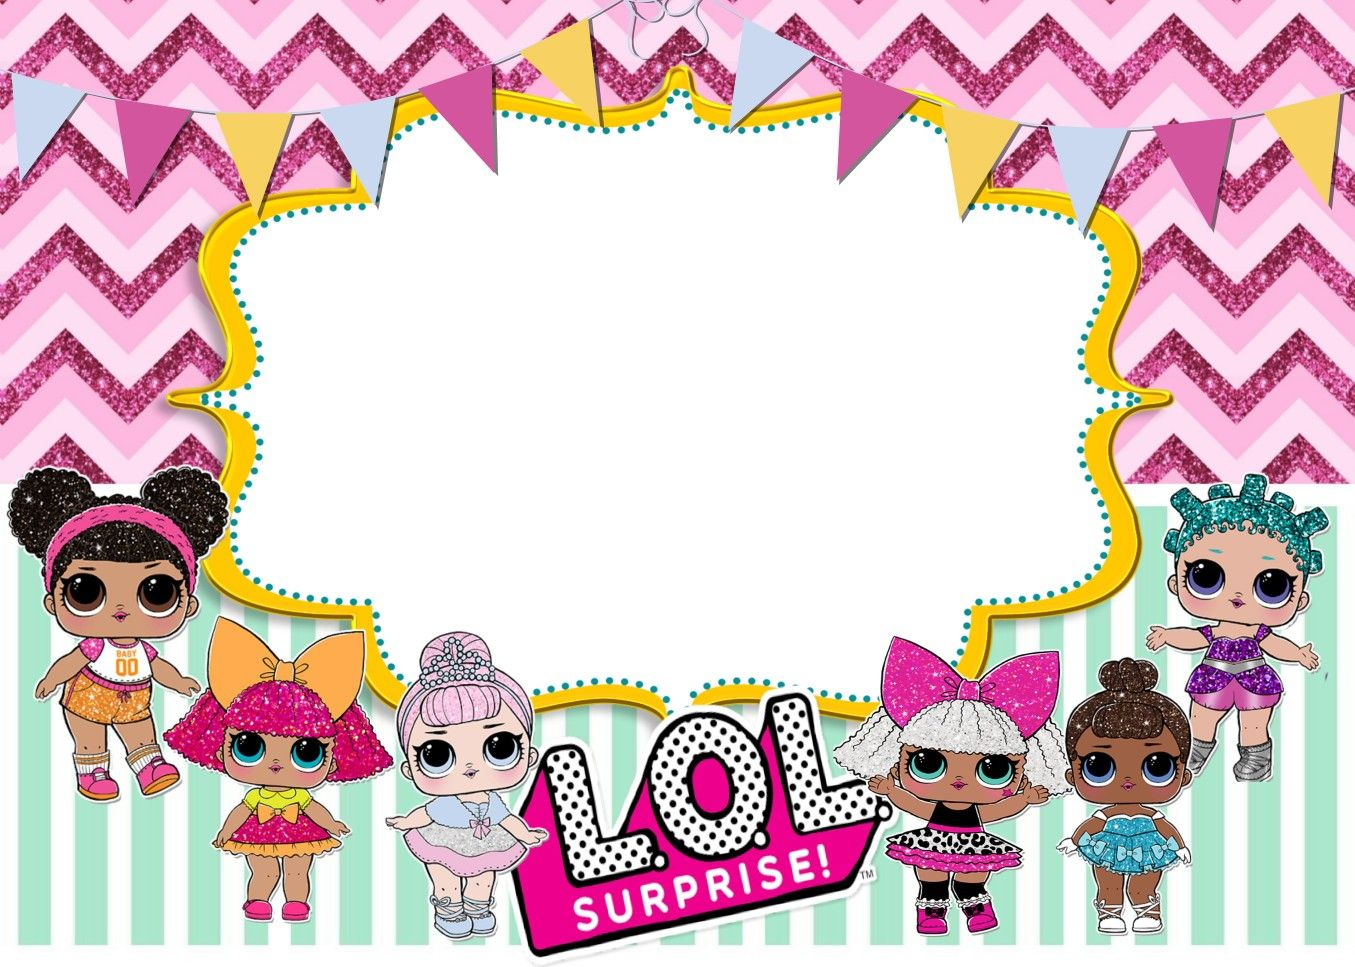 Doll Lol Frame Wallpapers High Quality Download Free